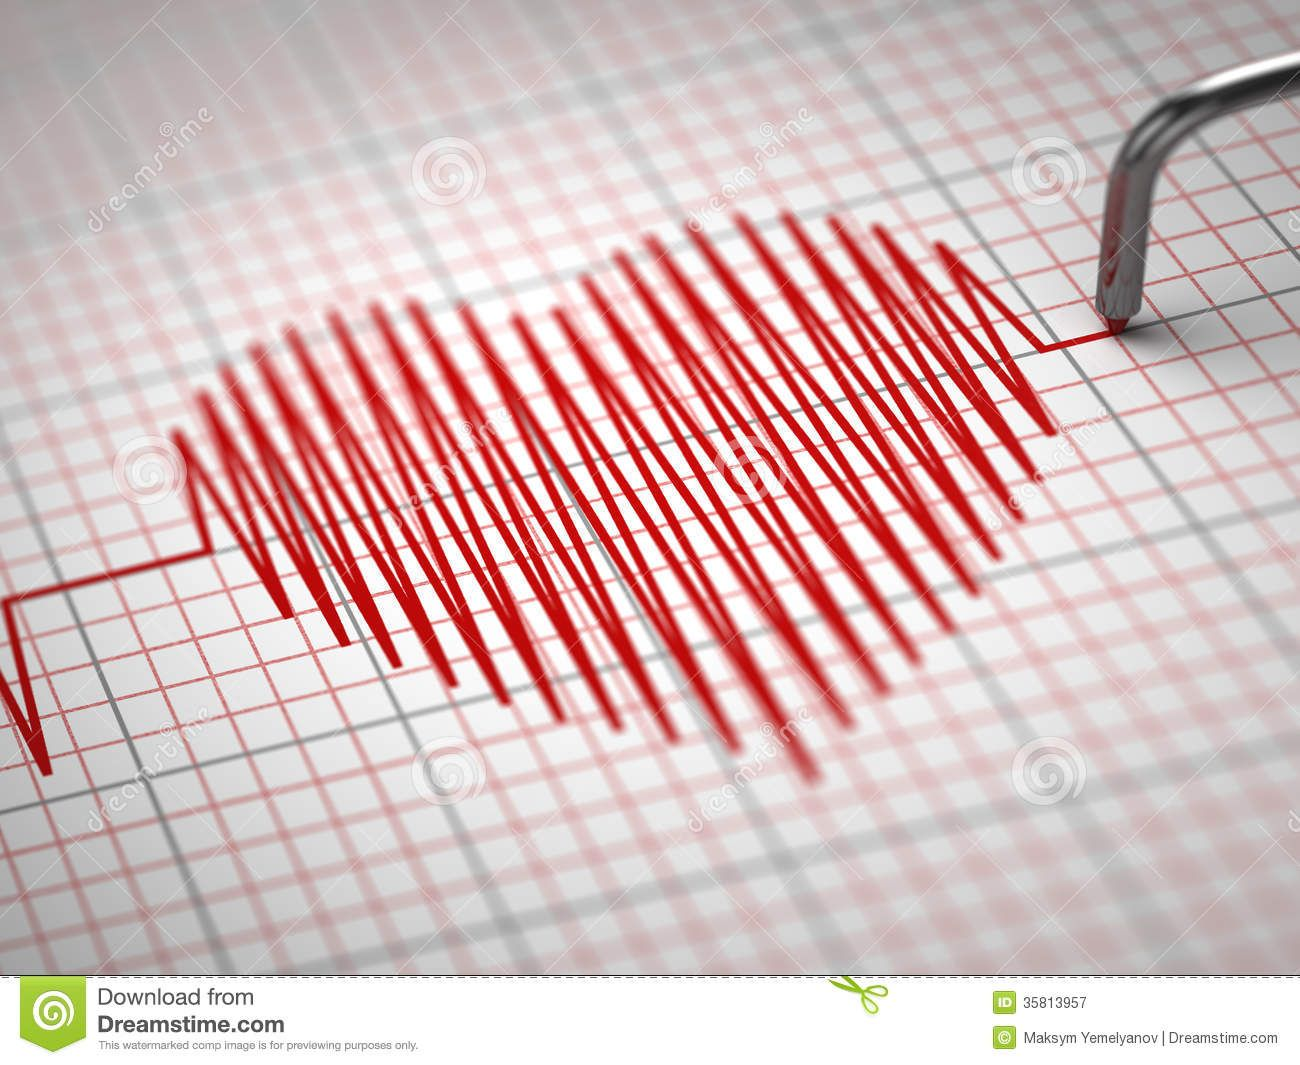 Electrocardiogramme In A Heartbeat Stock Photography Free Futuristic